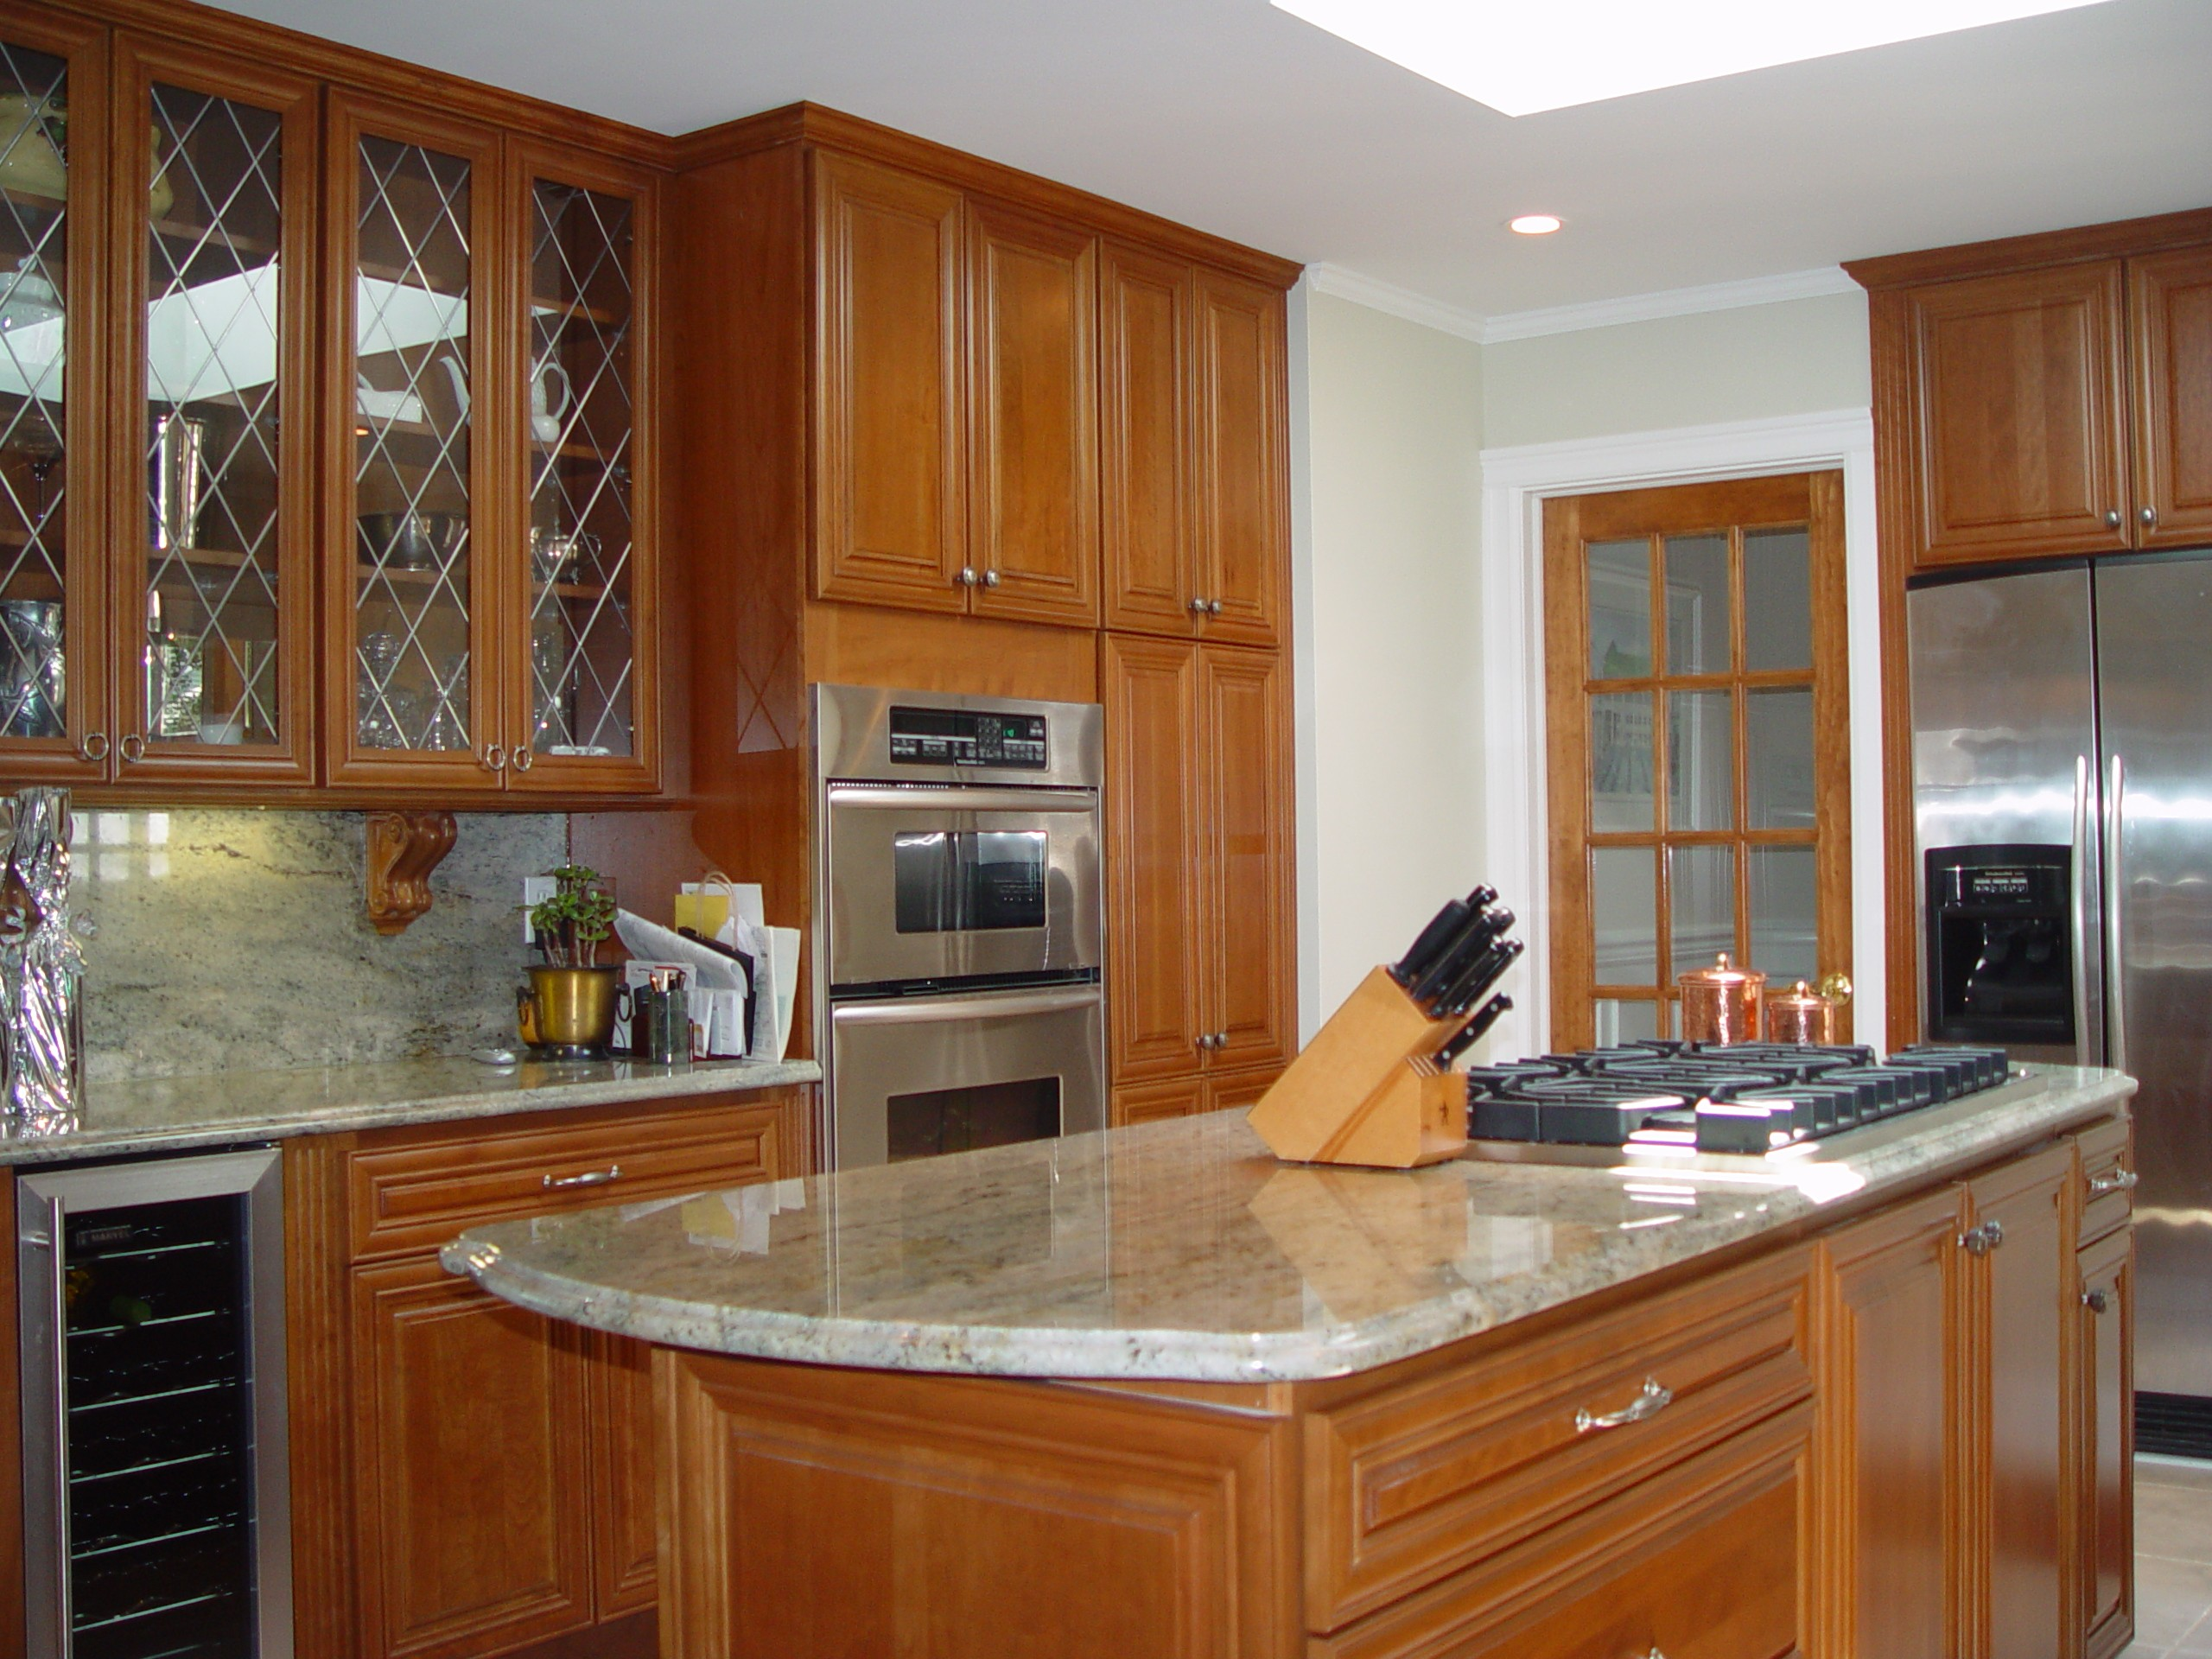 NJ Pricing Guide For Your Next Monmouth County Kitchen Remodel - Estimated cost of kitchen remodel